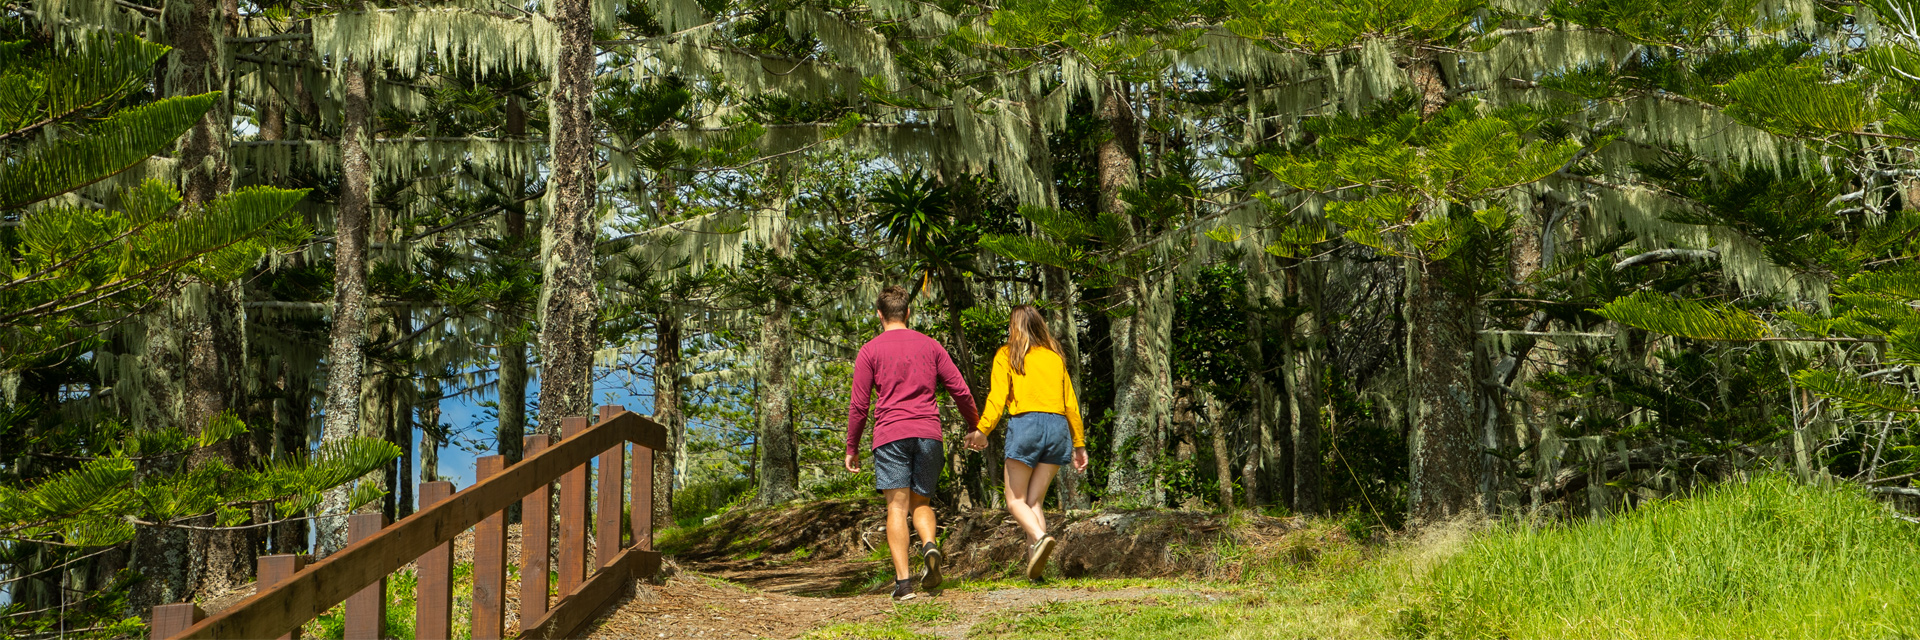 Back view of young man and woman walking side by side on a track through Norfolk pines. They are holding hands. The man'